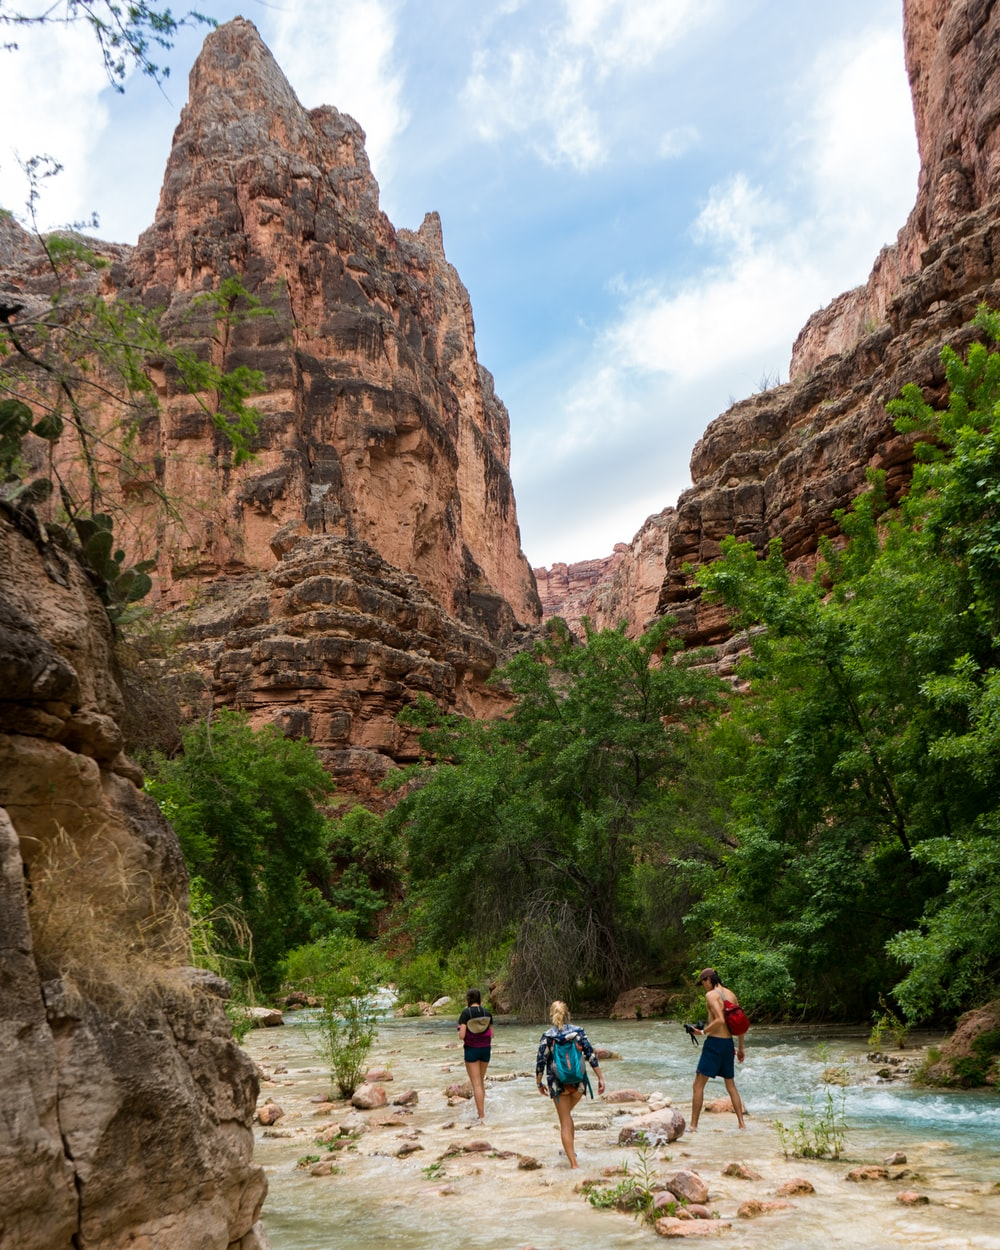 three person walking on the river besides the mountain